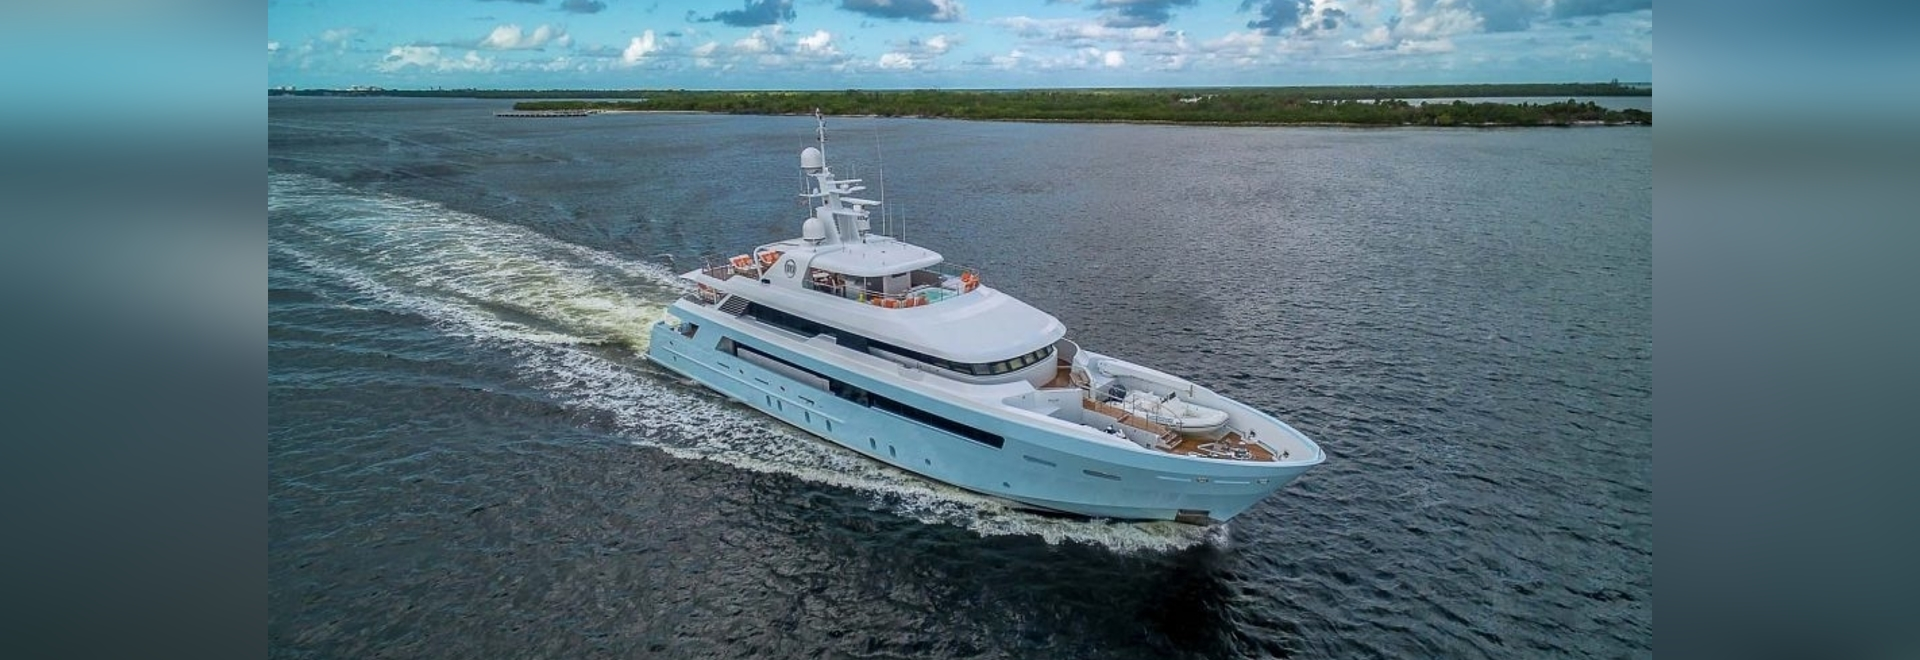 In vendita in Florida: 46m Delta Marine yacht a motore Time For Us